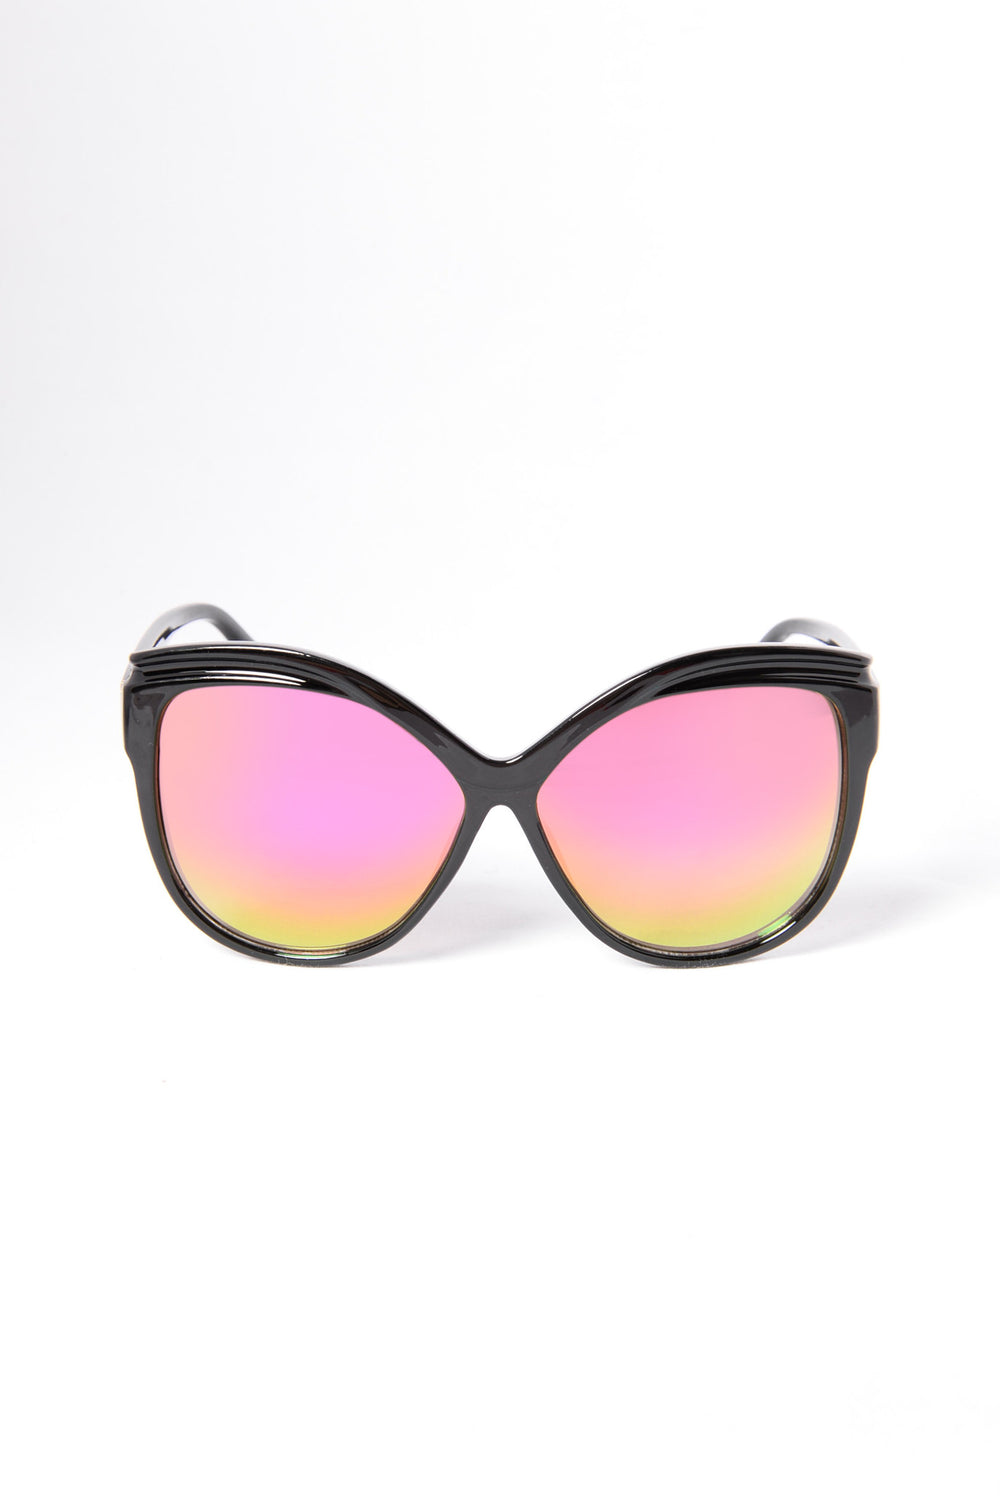 Bottoms Bay Sunglasses - Black/Red